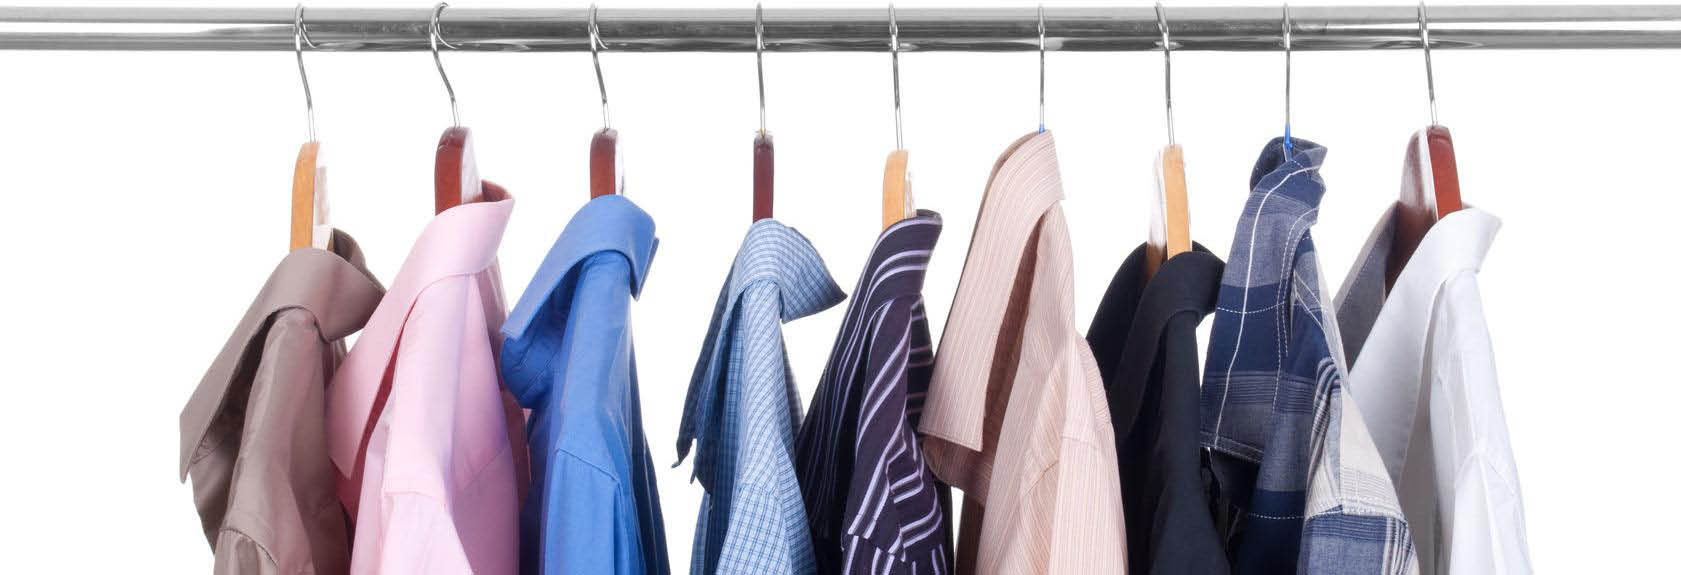 royal tustin cleaners tustin ca dry cleaning coupons near me